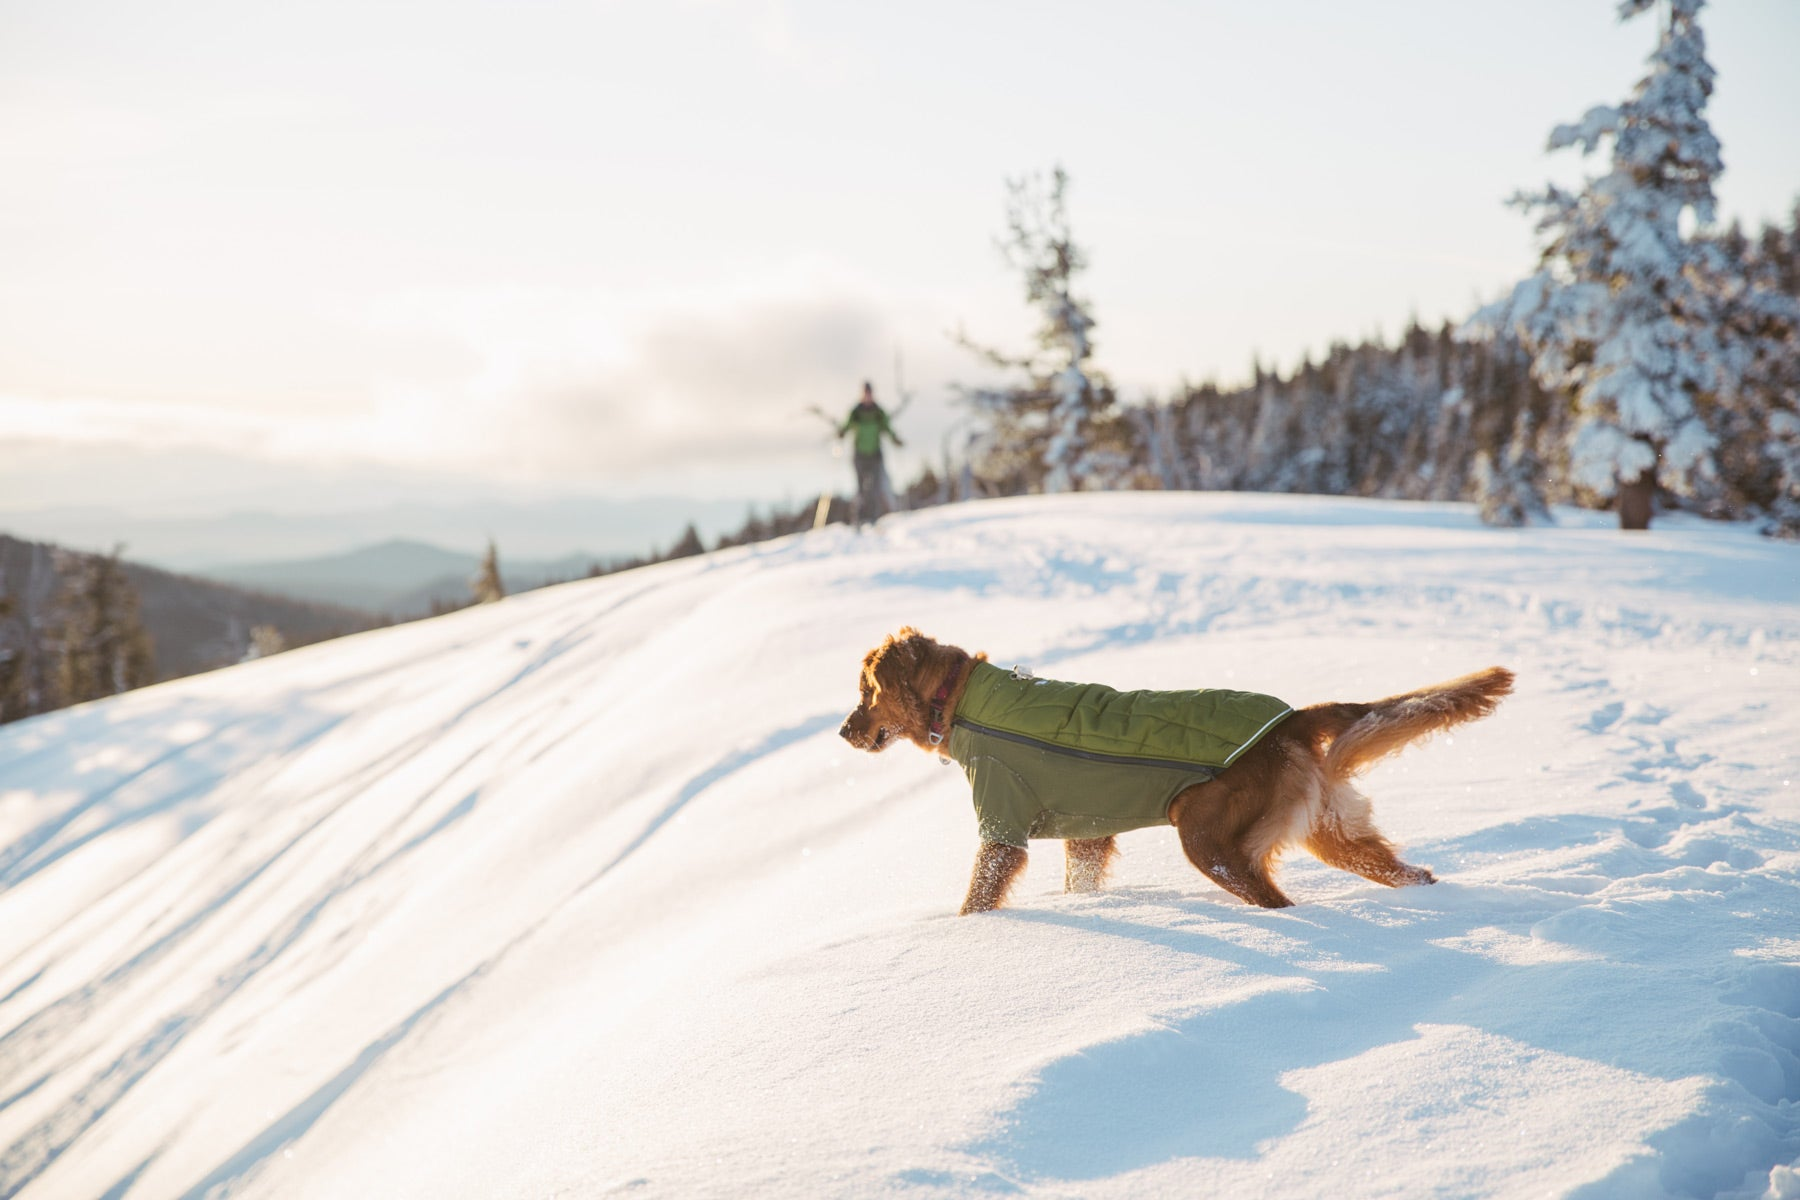 Bailey in powder hound dog jacket looks down at snowy slope with ski tracks.